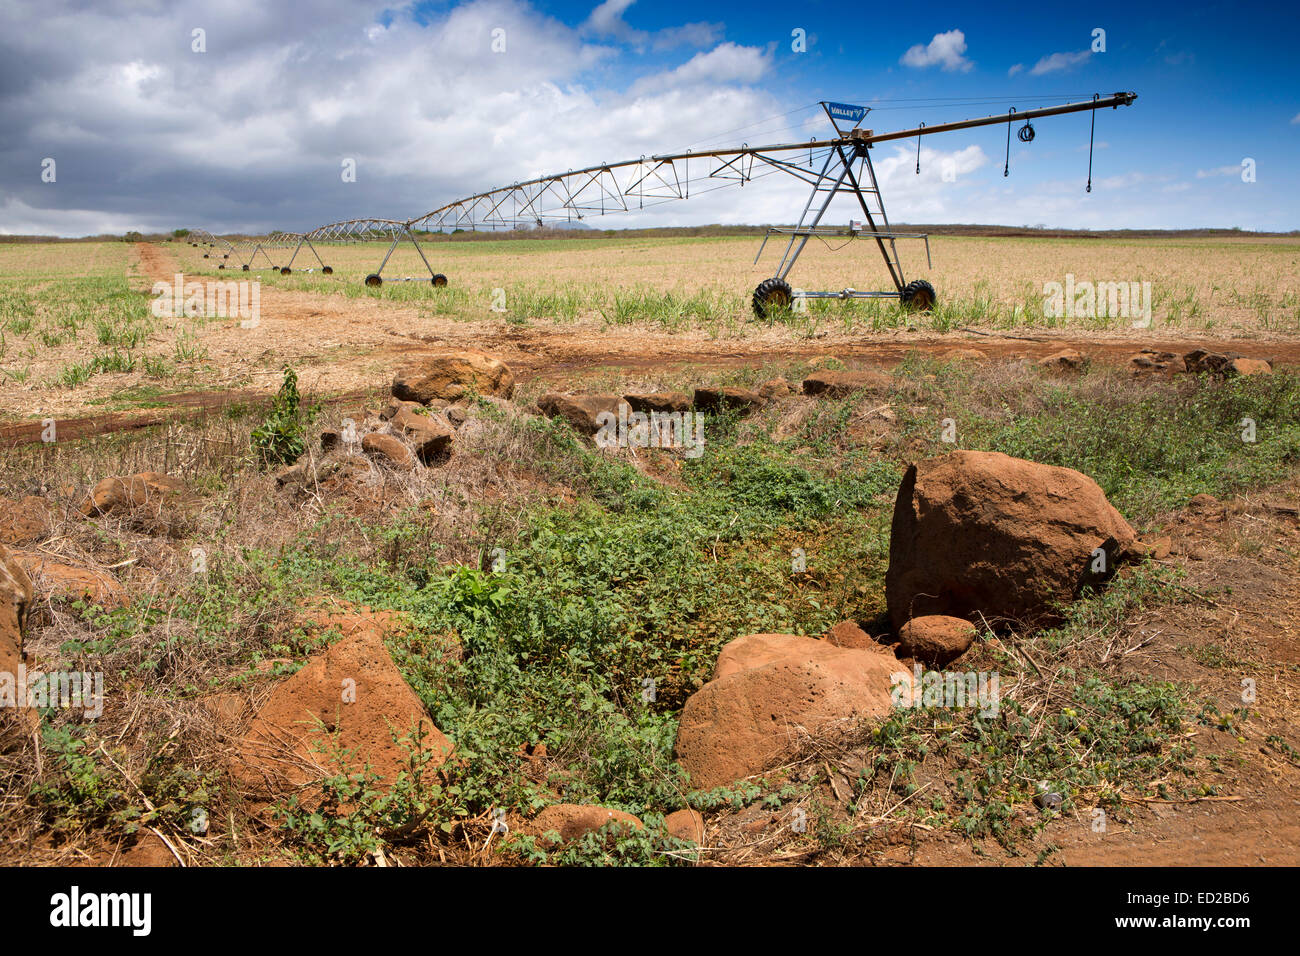 Mauritius, Albion, agriculture, Valley linear crop irrigation machine in newly planted sugar cane field - Stock Image